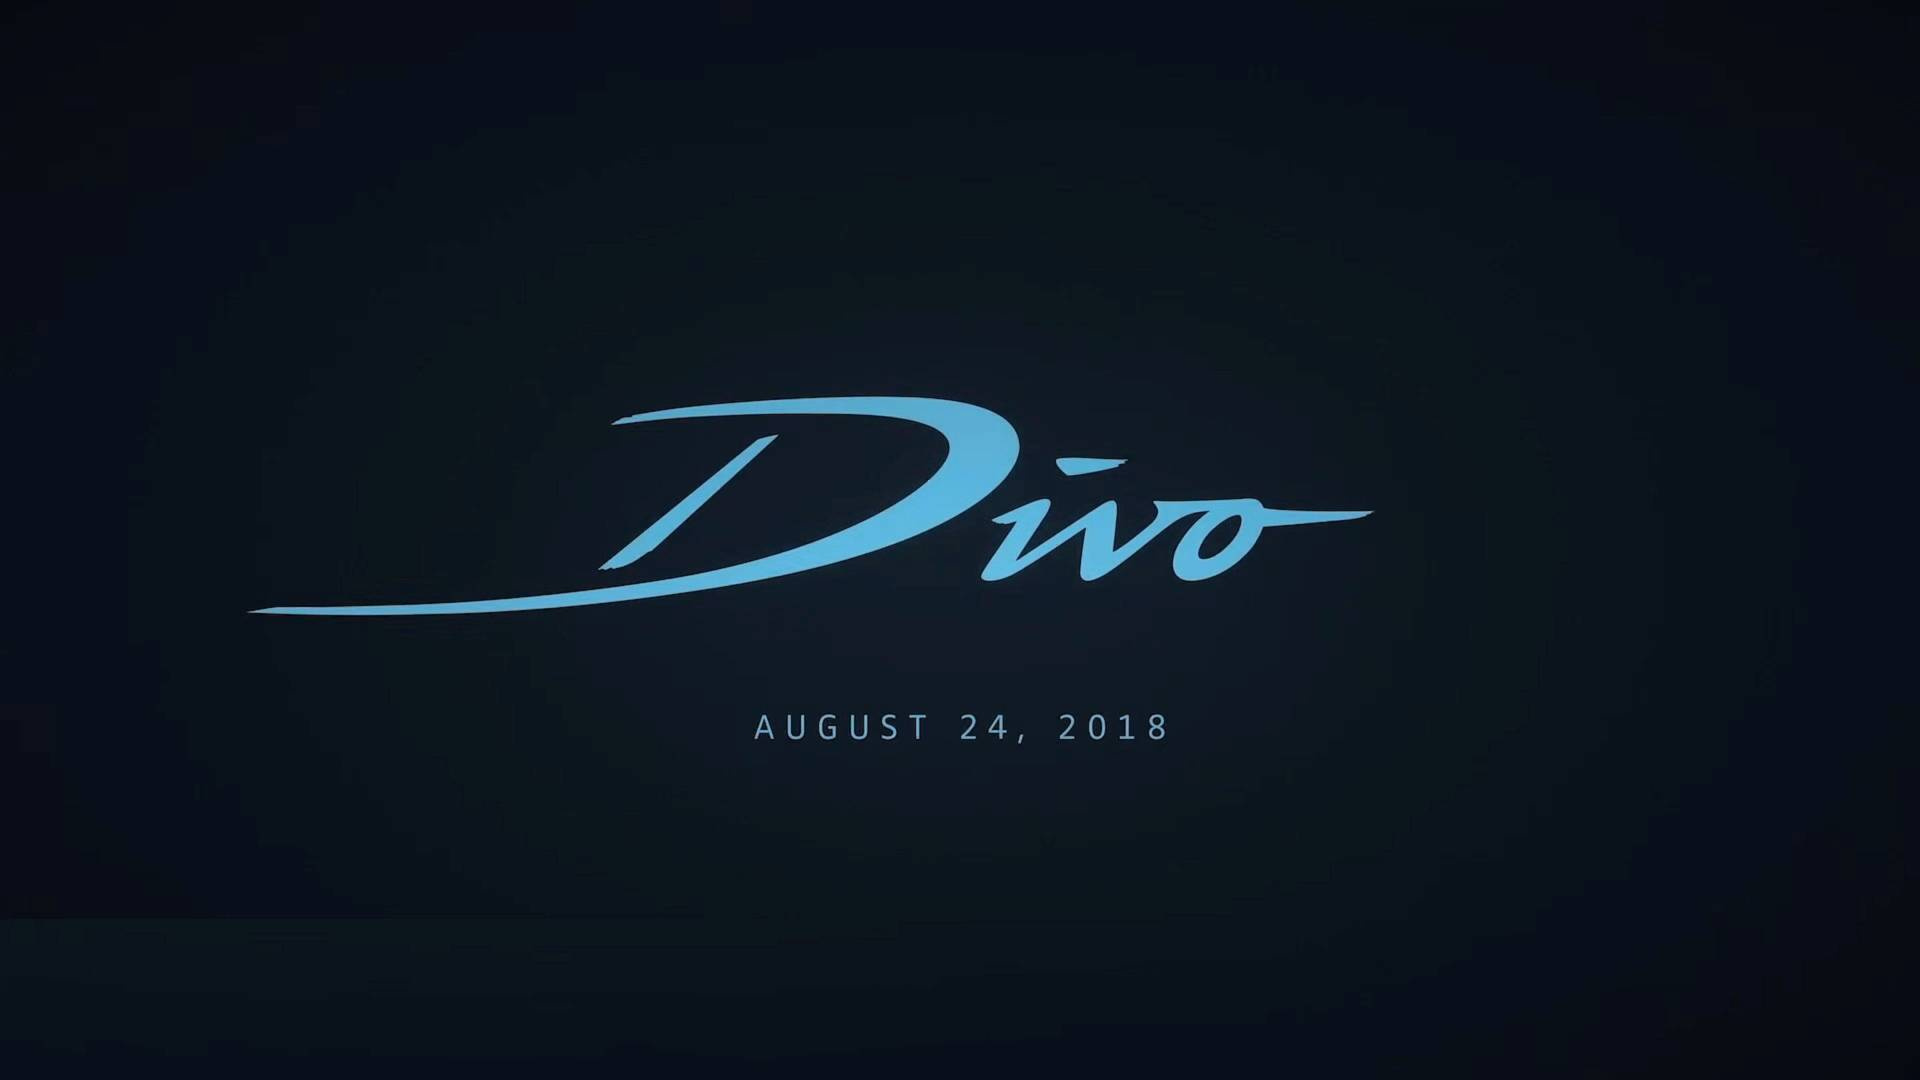 Bugatti Debuts Eight Part Teaser Video Series About Chiron Divo